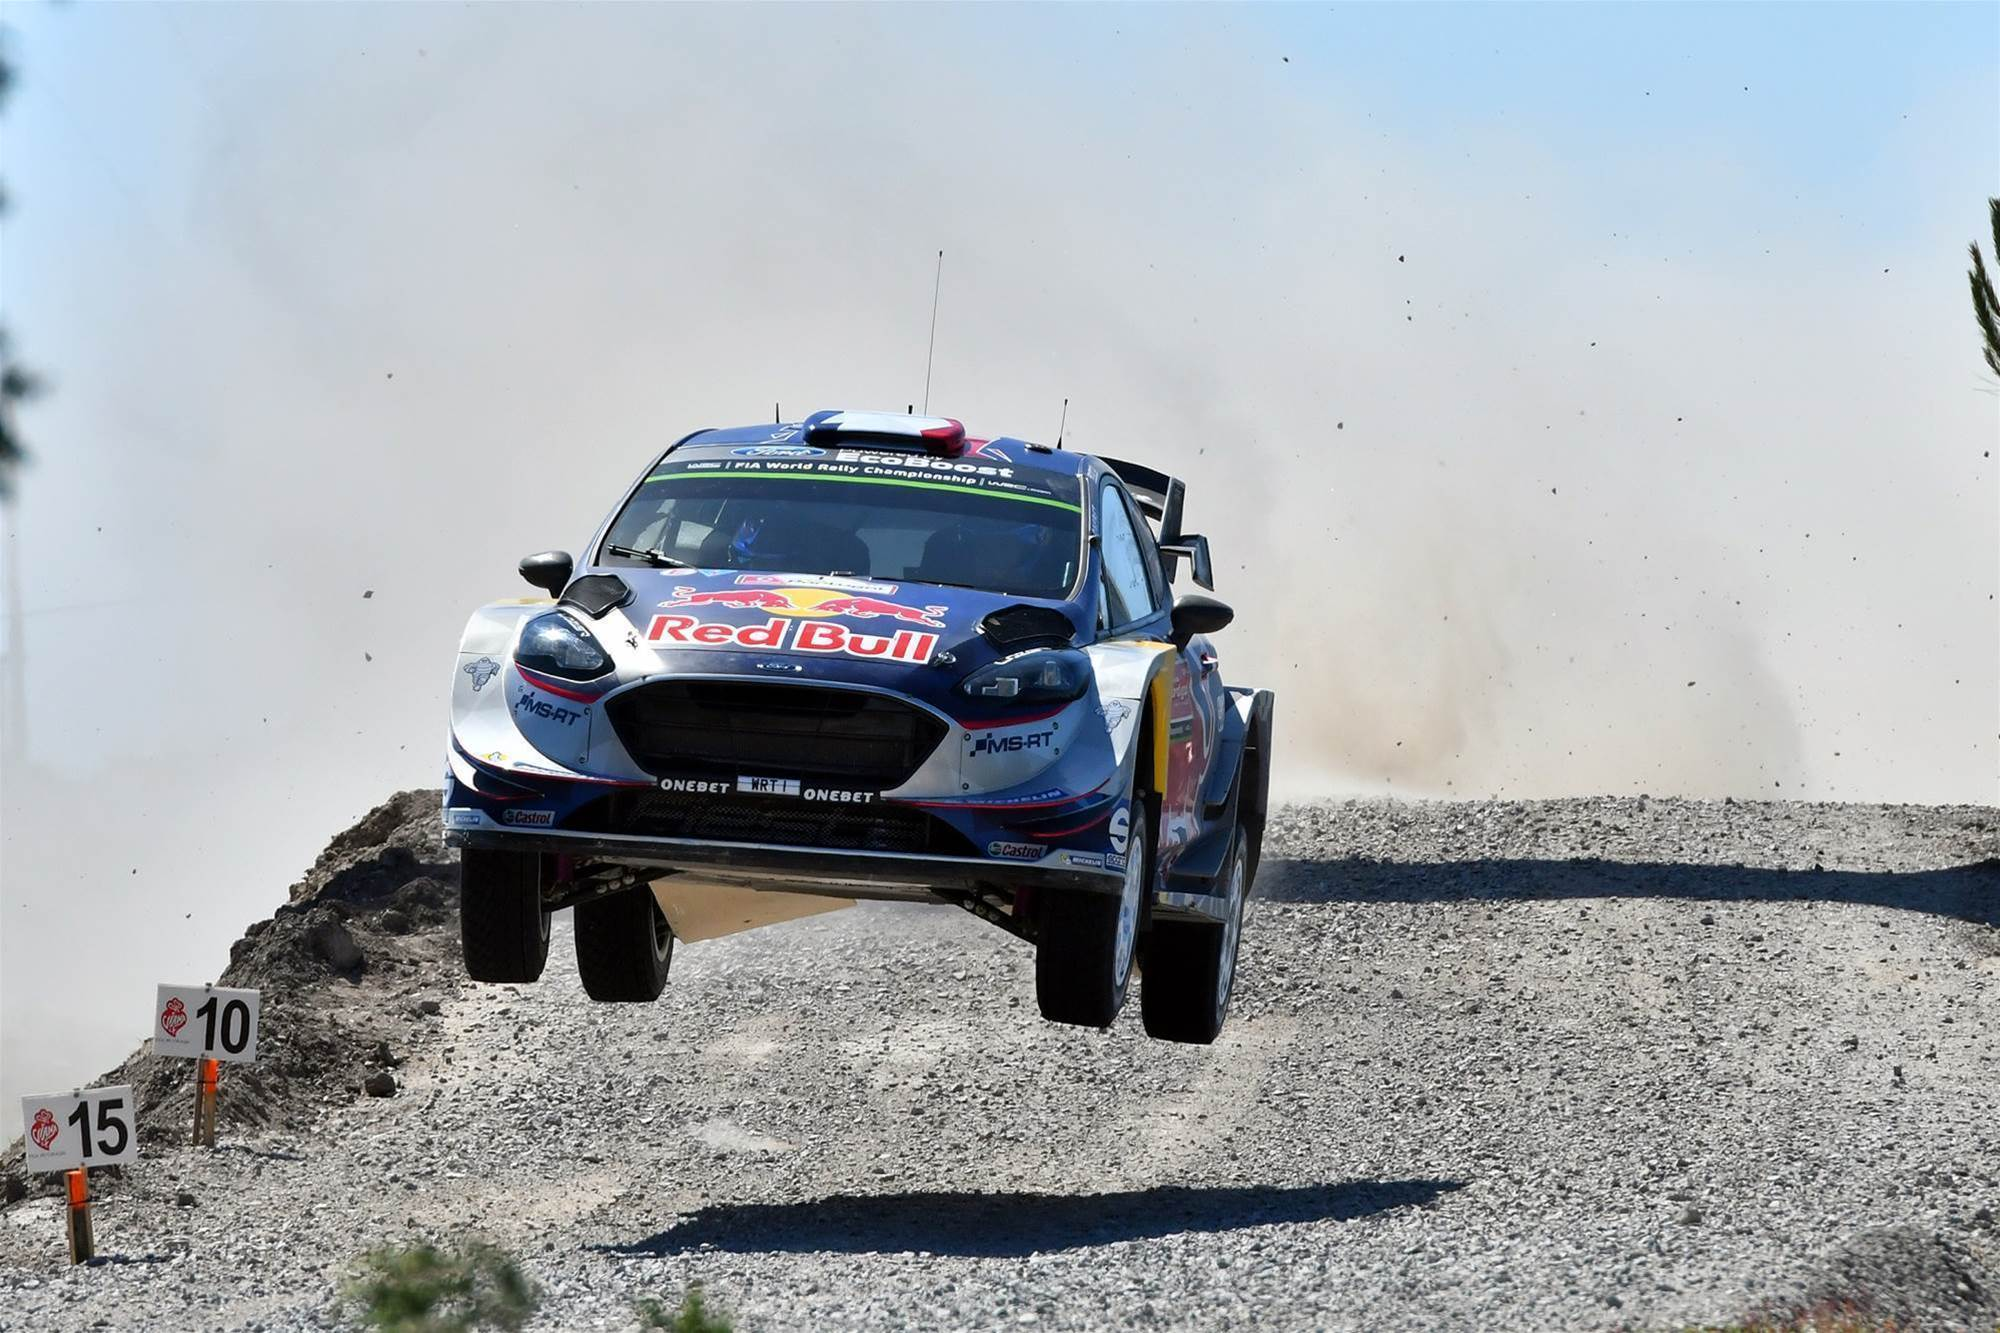 Pic Gallery: Portugal WRC